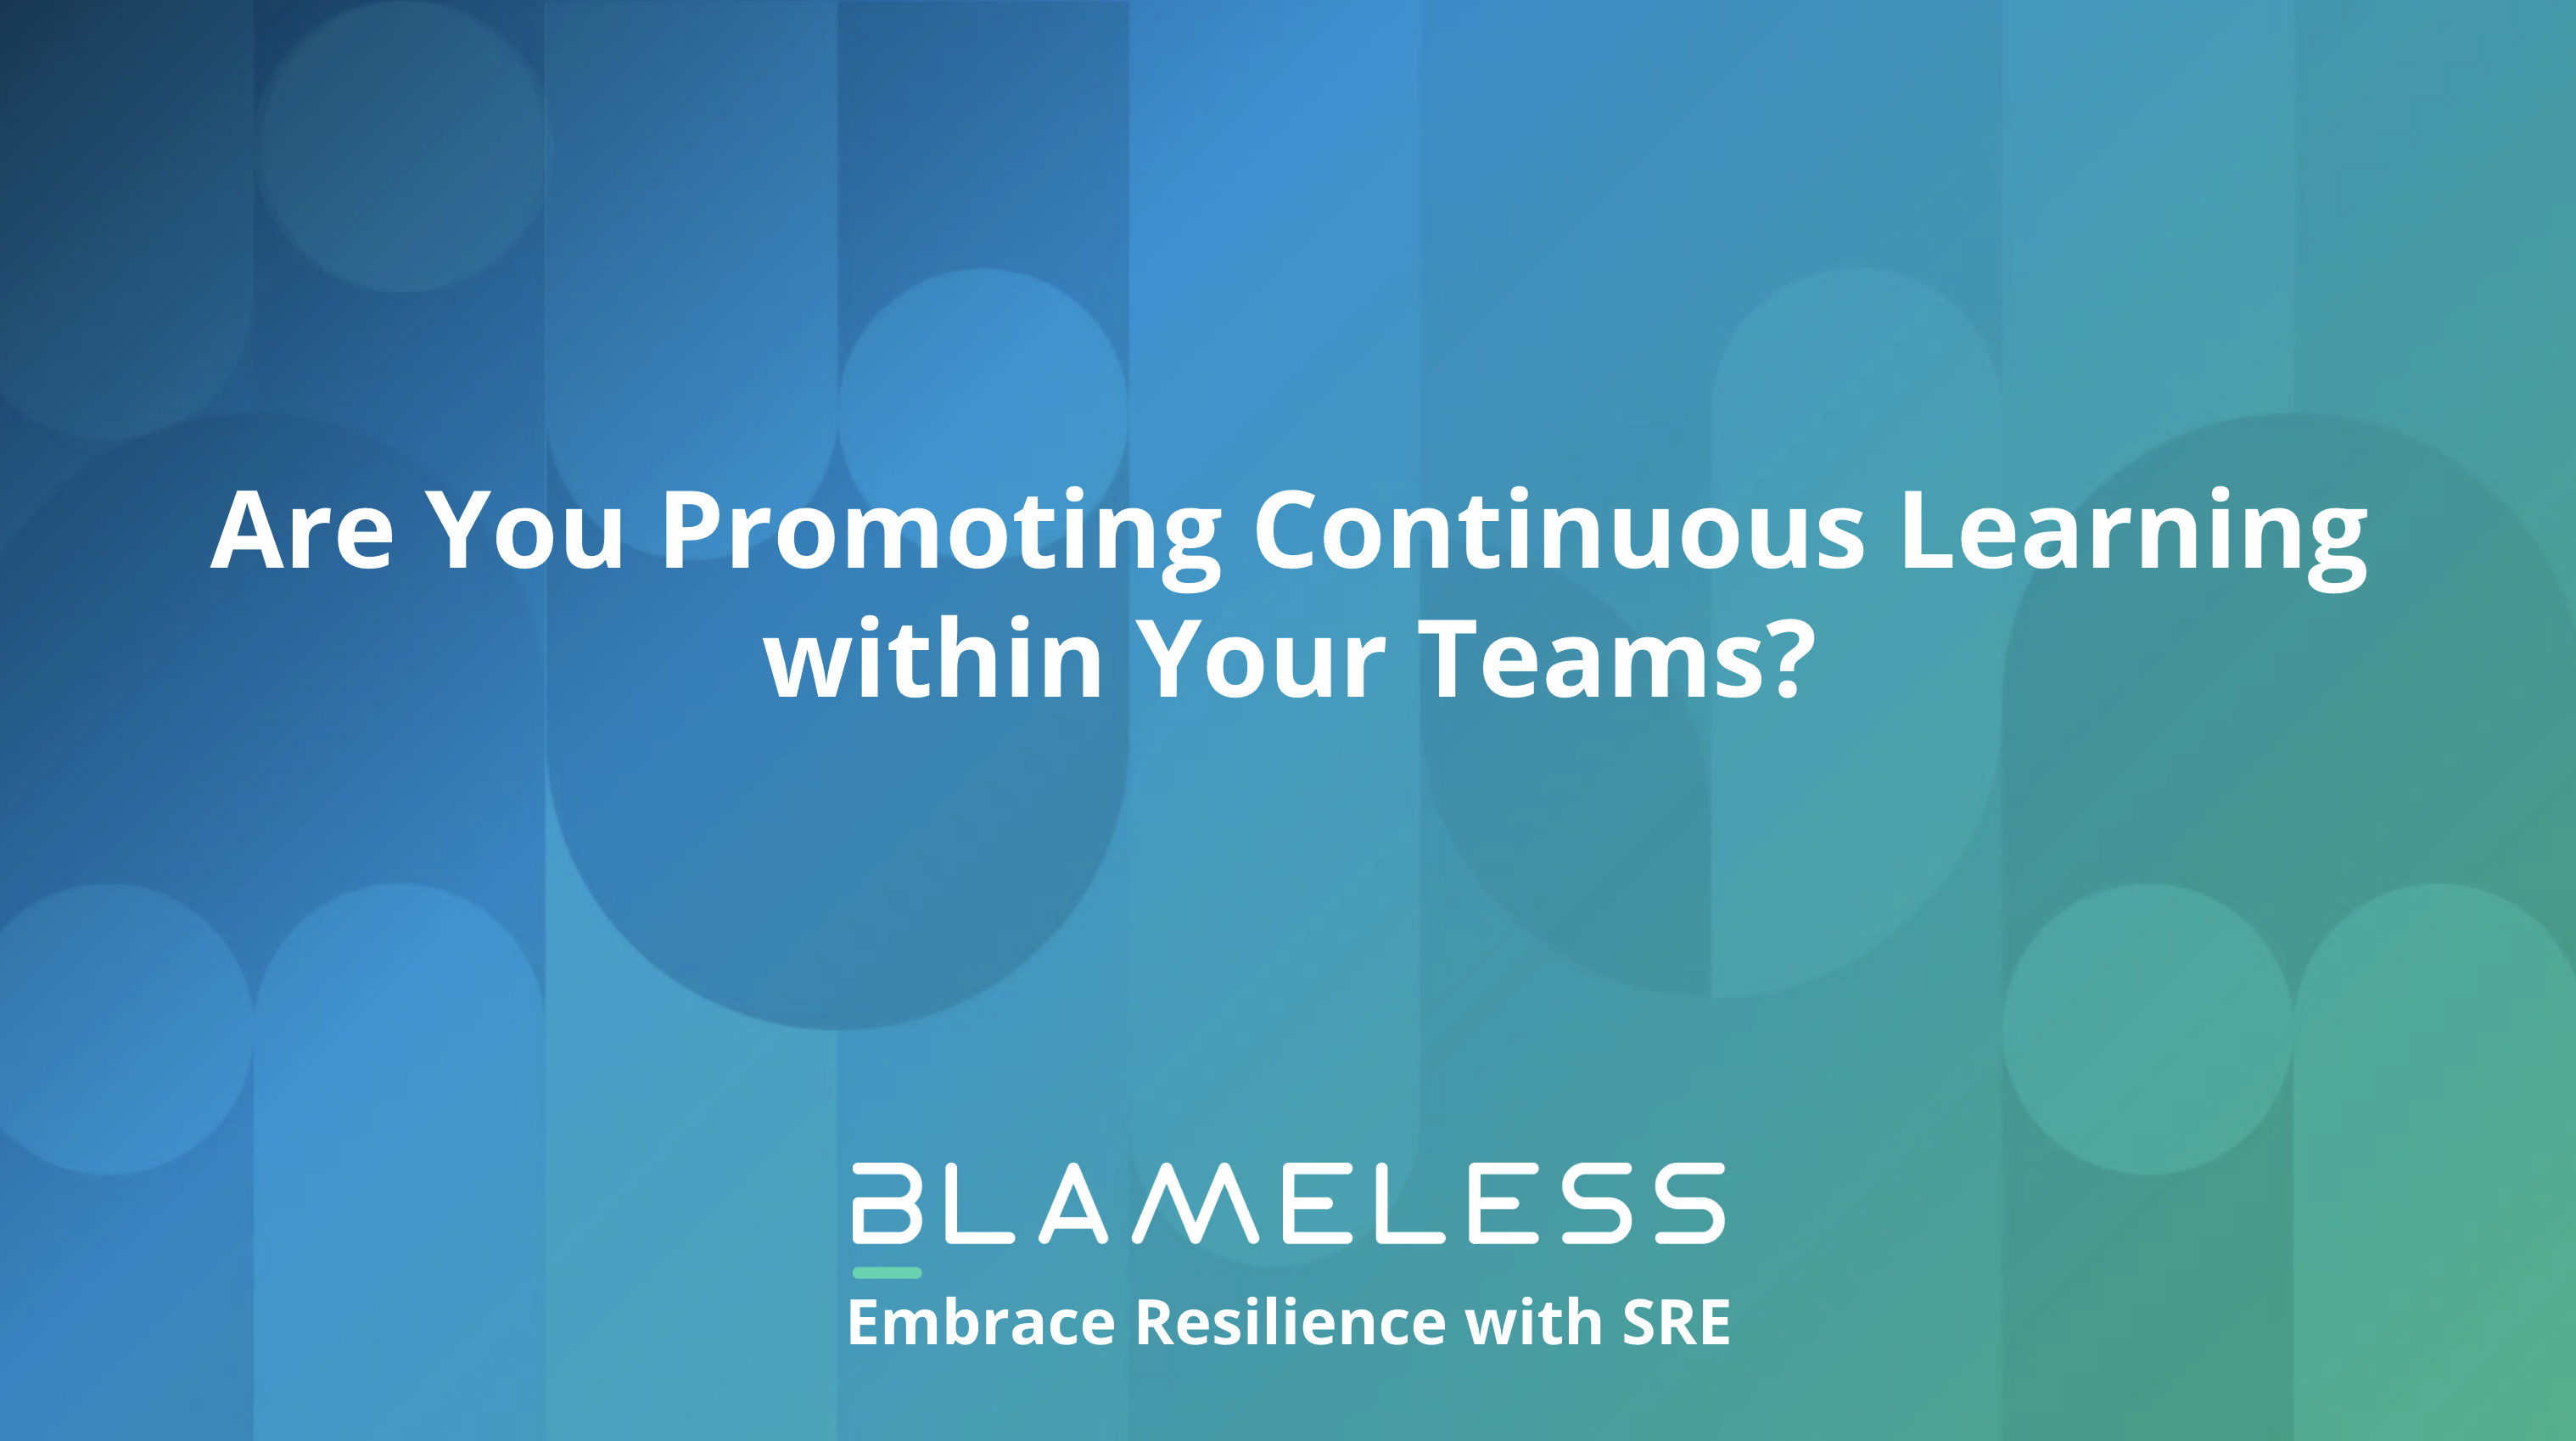 Are you Promoting Continuous Learning within Your Teams?